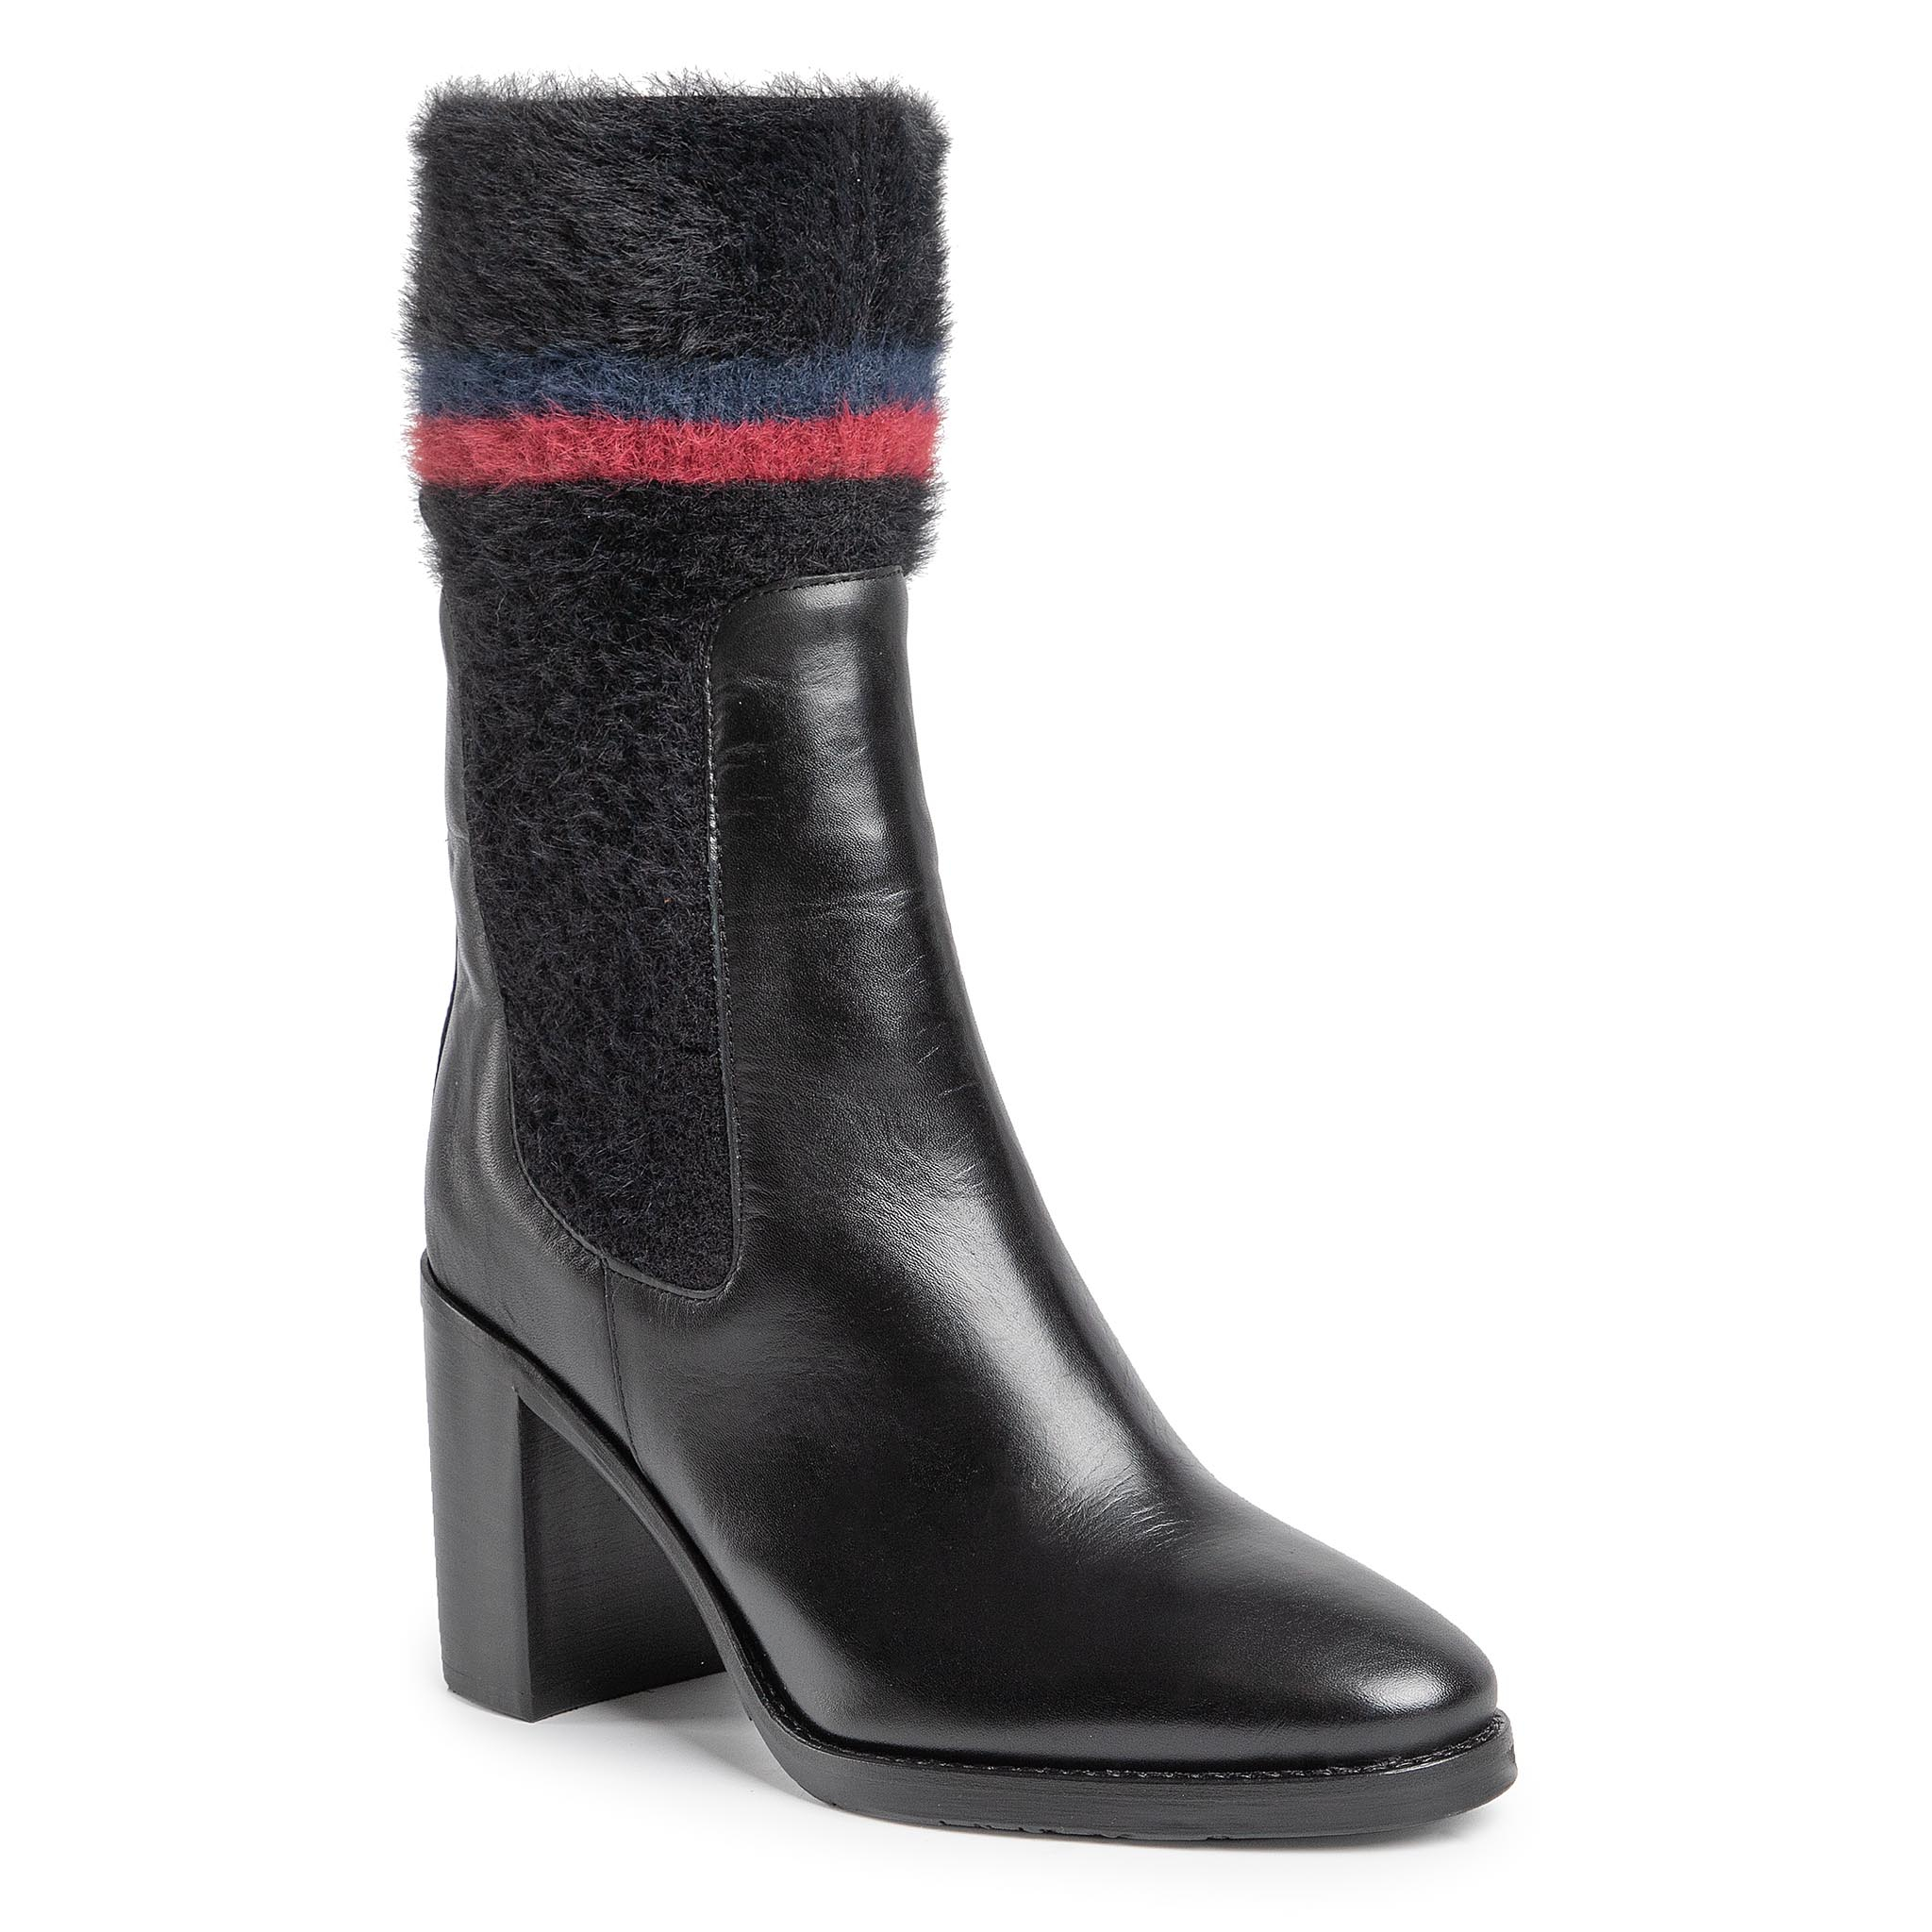 Botine TOMMY HILFIGER - Cosy High Heel Leather Bootie FW0FW04348 Black 990